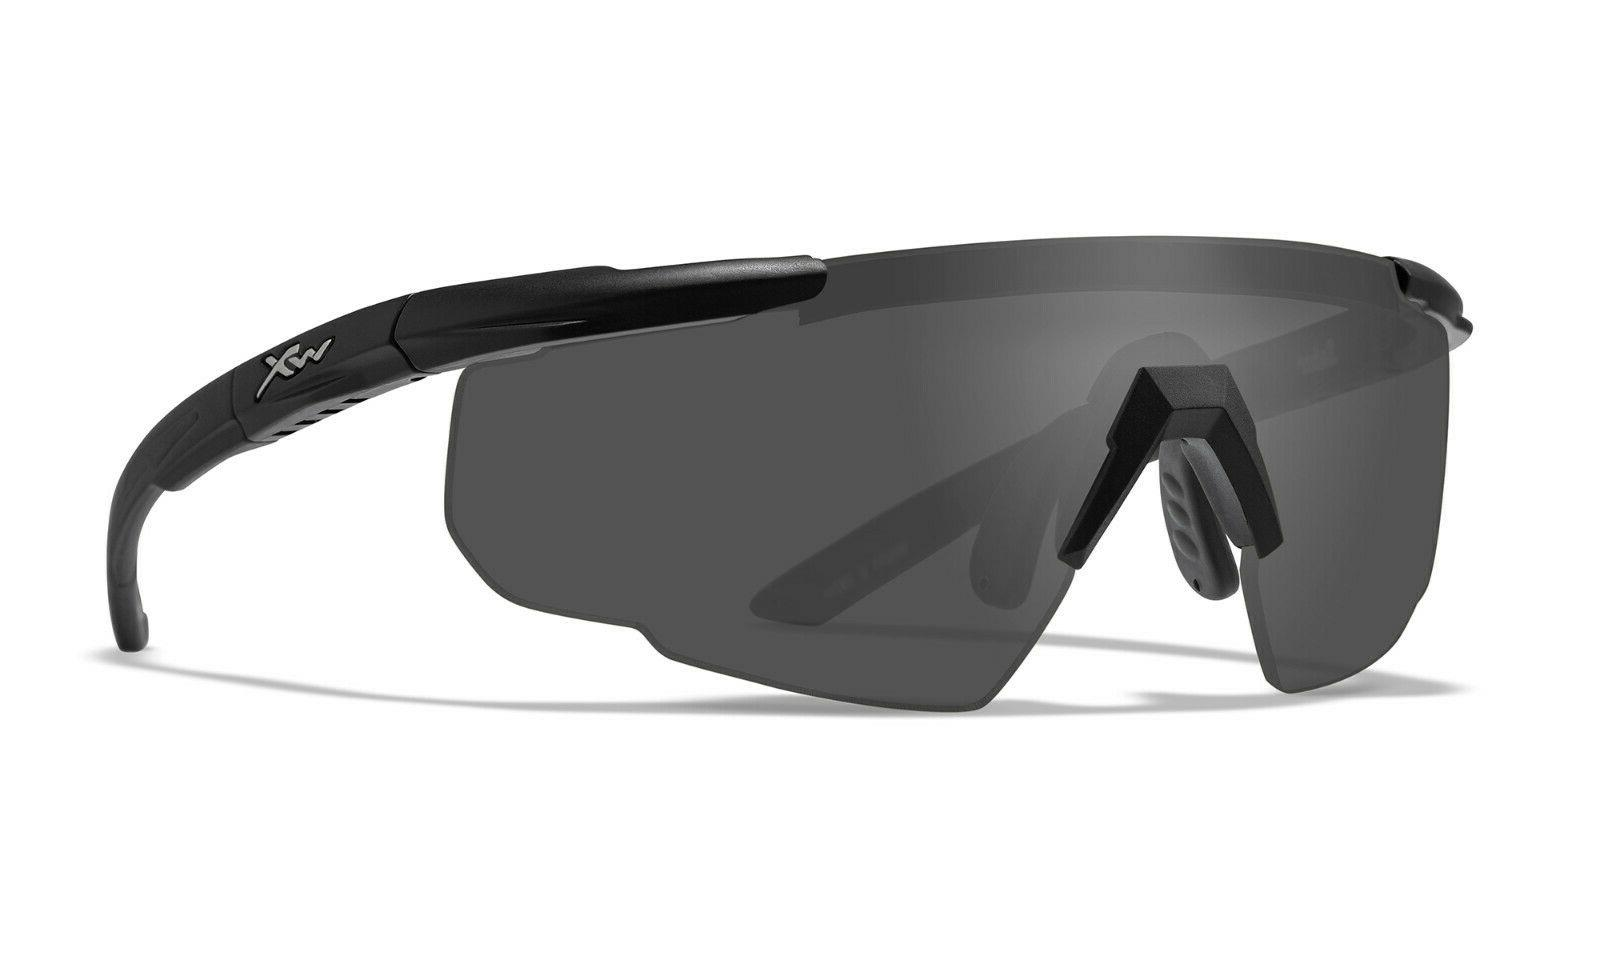 Wiley X Saber Advanced Sunglasses, Smoke Grey, Matte Black